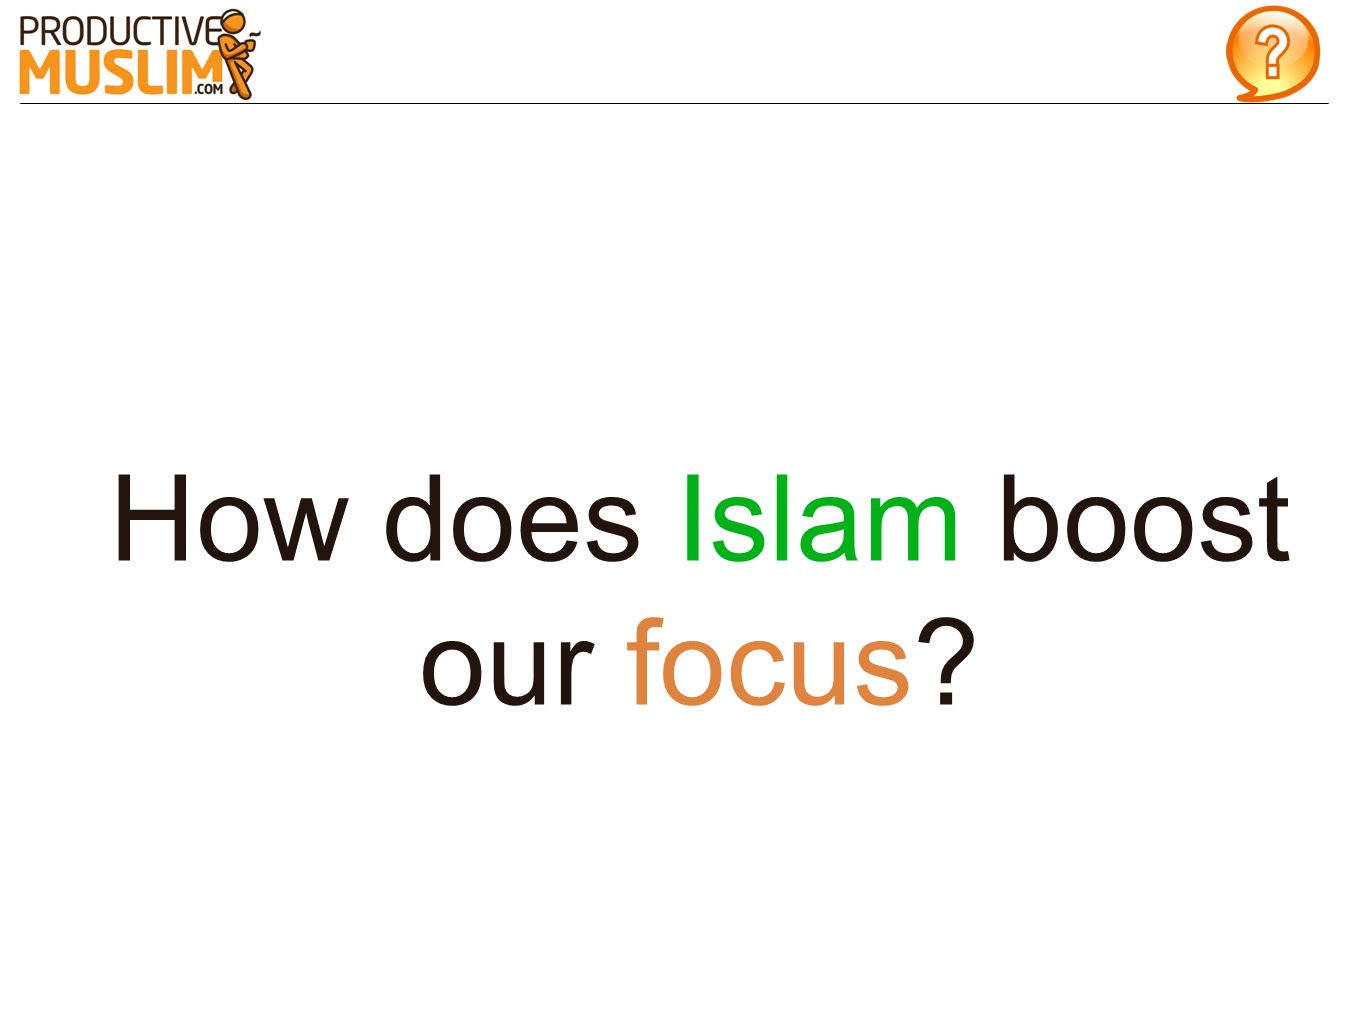 How does Islam boost our focus?